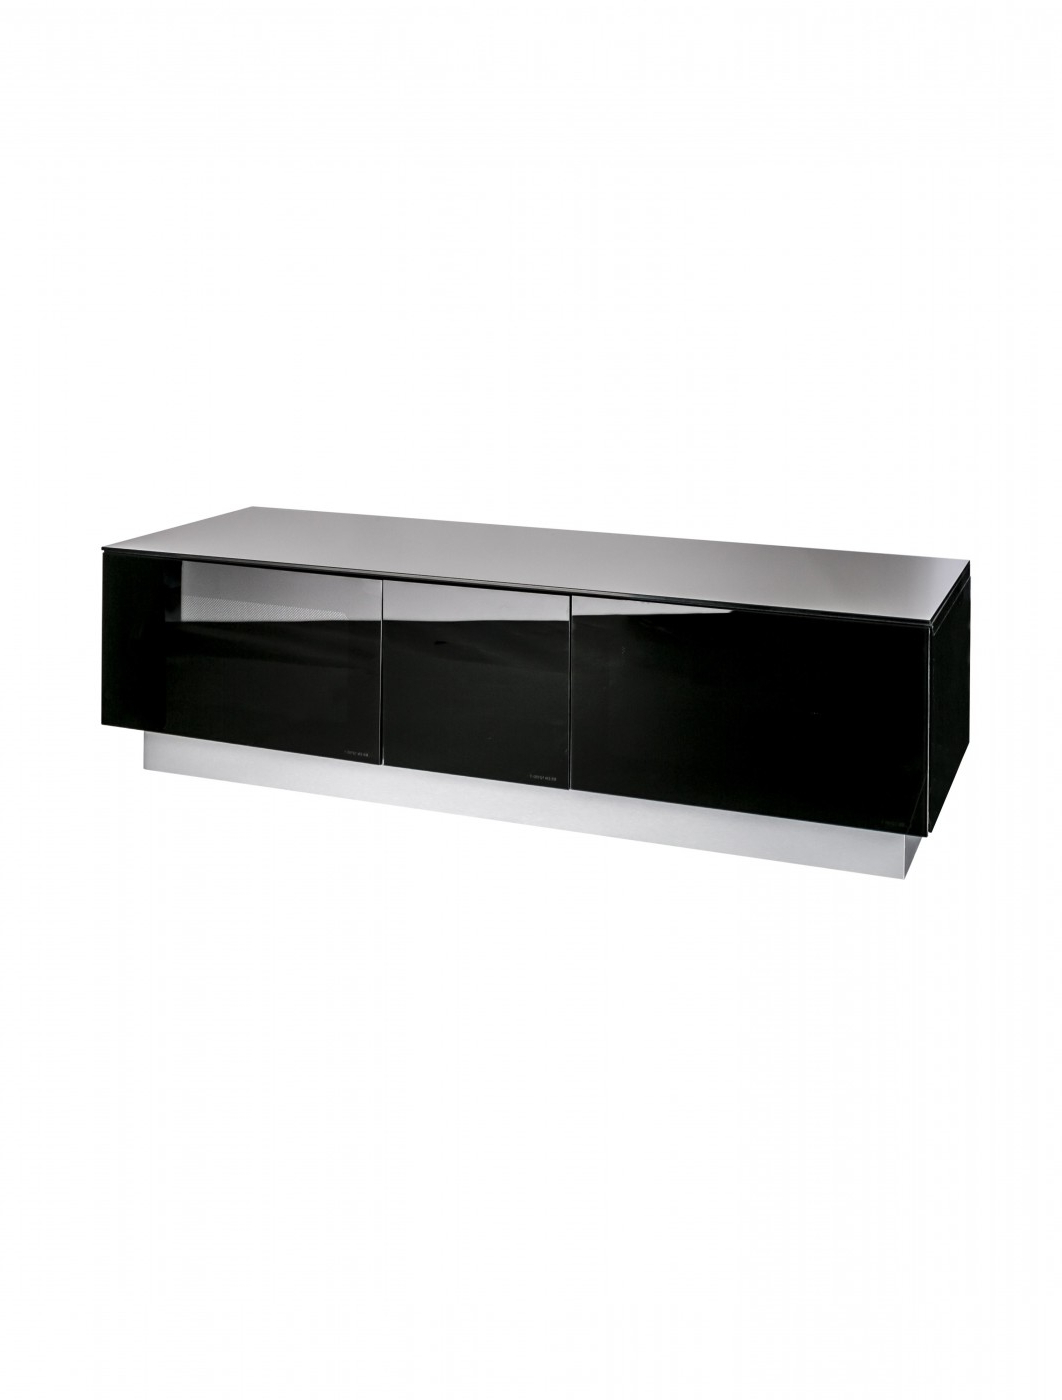 Tv Stand Element Modular Emtmod1250 Blk Tv Cabinet Intended For Most Popular 57'' Tv Stands With Open Glass Shelves Gray & Black Finsh (View 10 of 10)